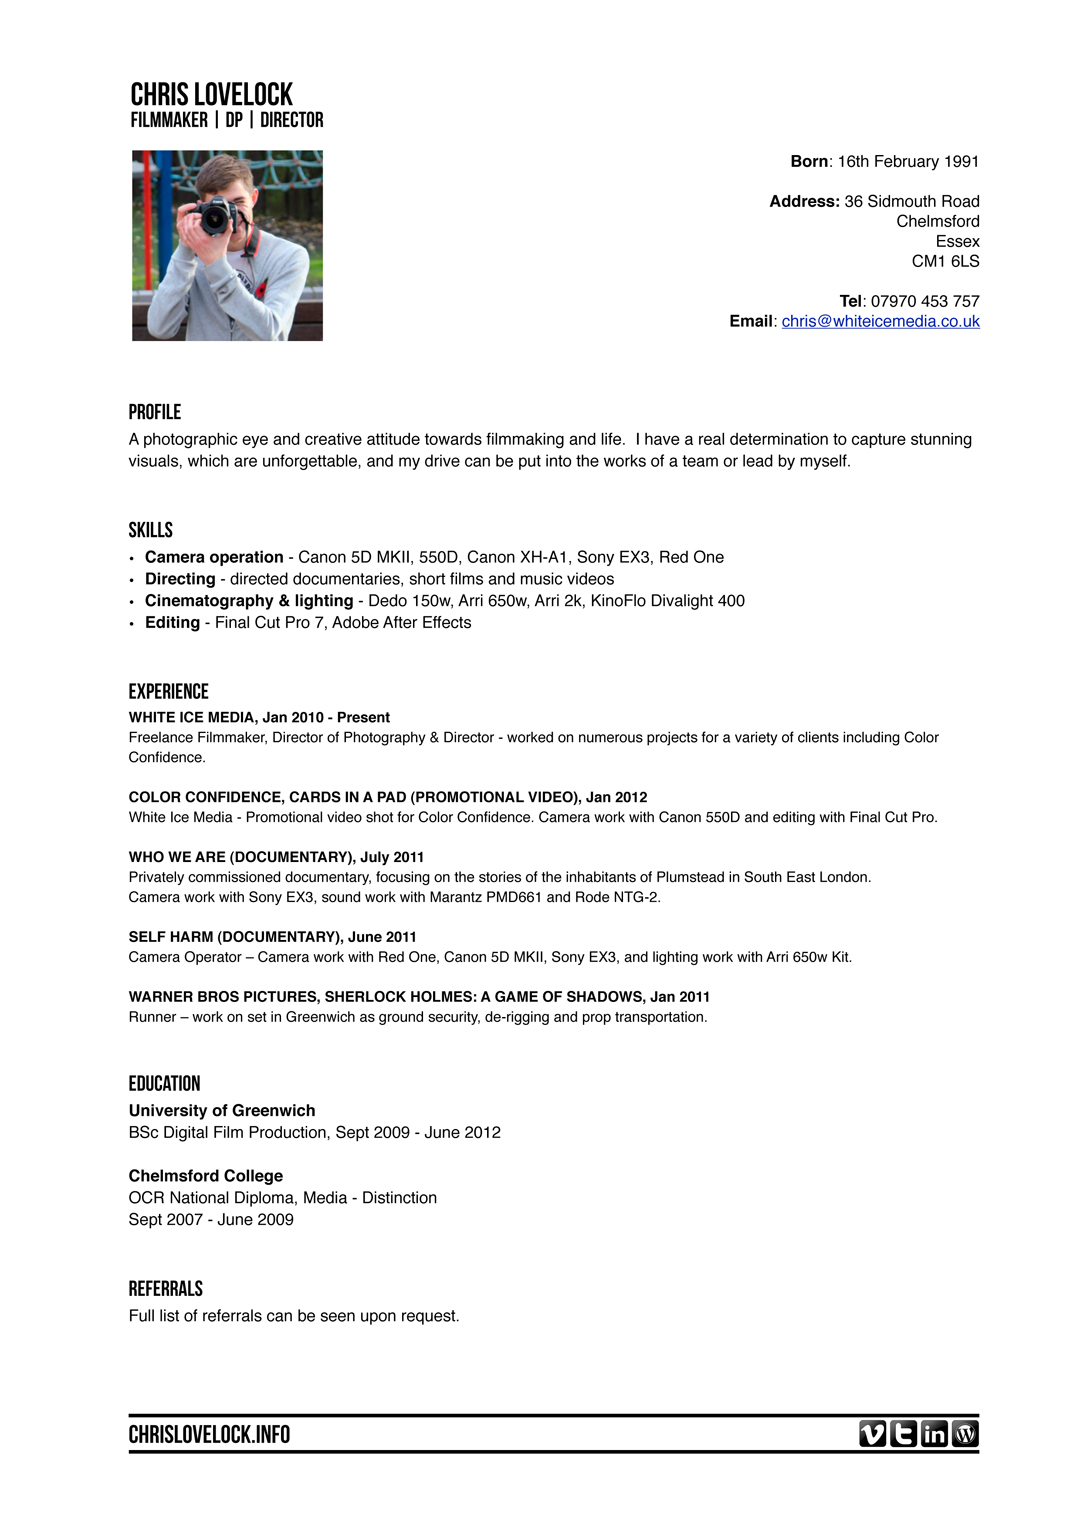 Current curriculum vitae samples